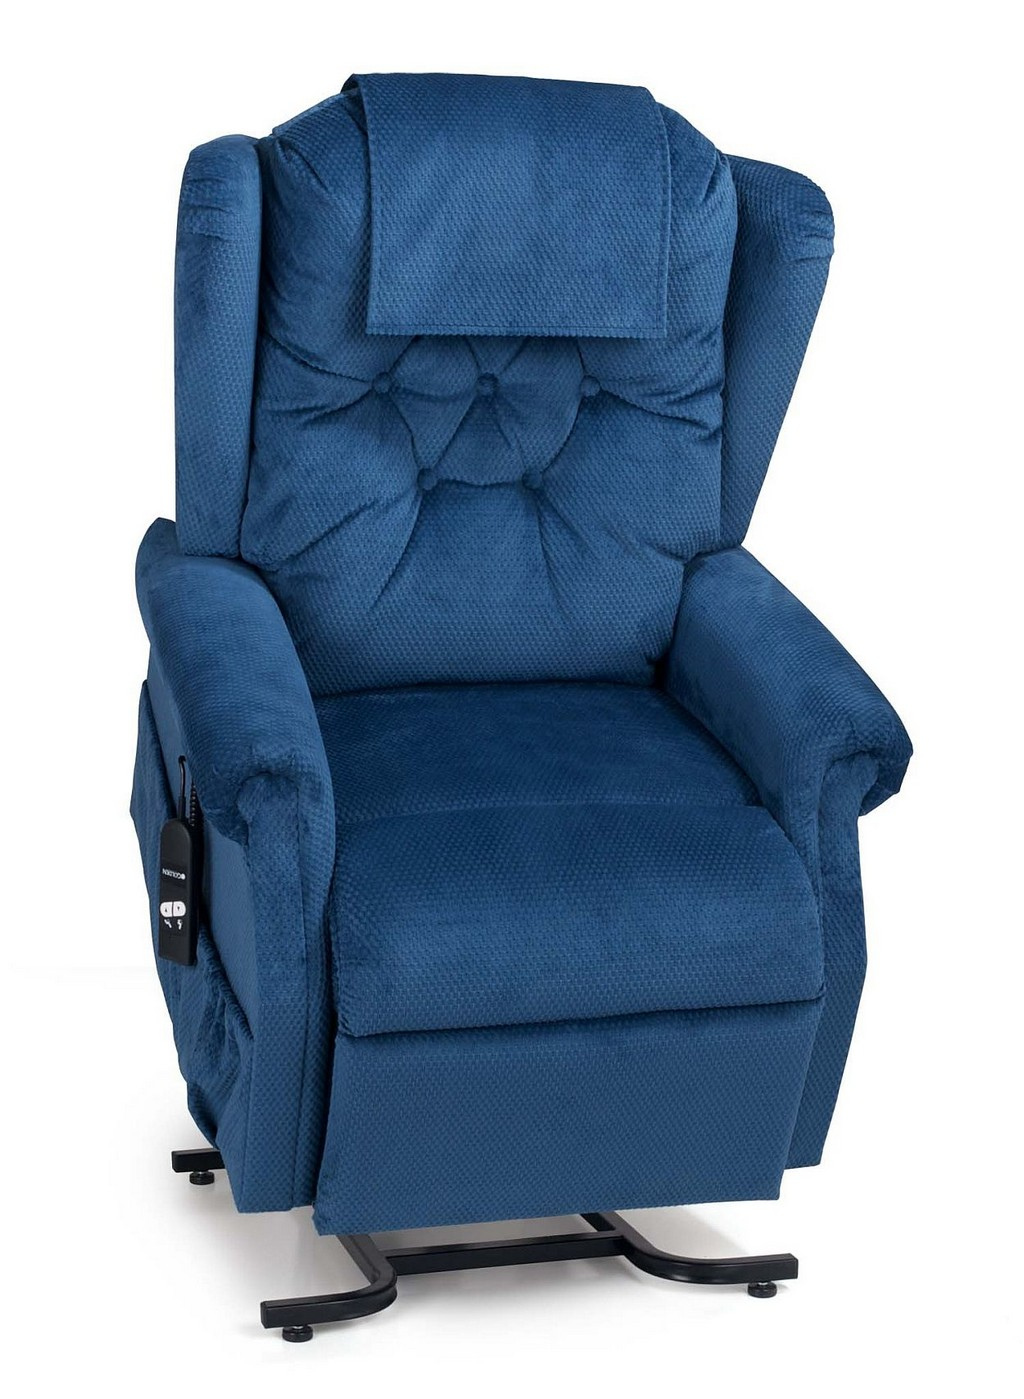 blue lift chair, blue lift chair, hubbell motor liftchair, lift chairs in pa